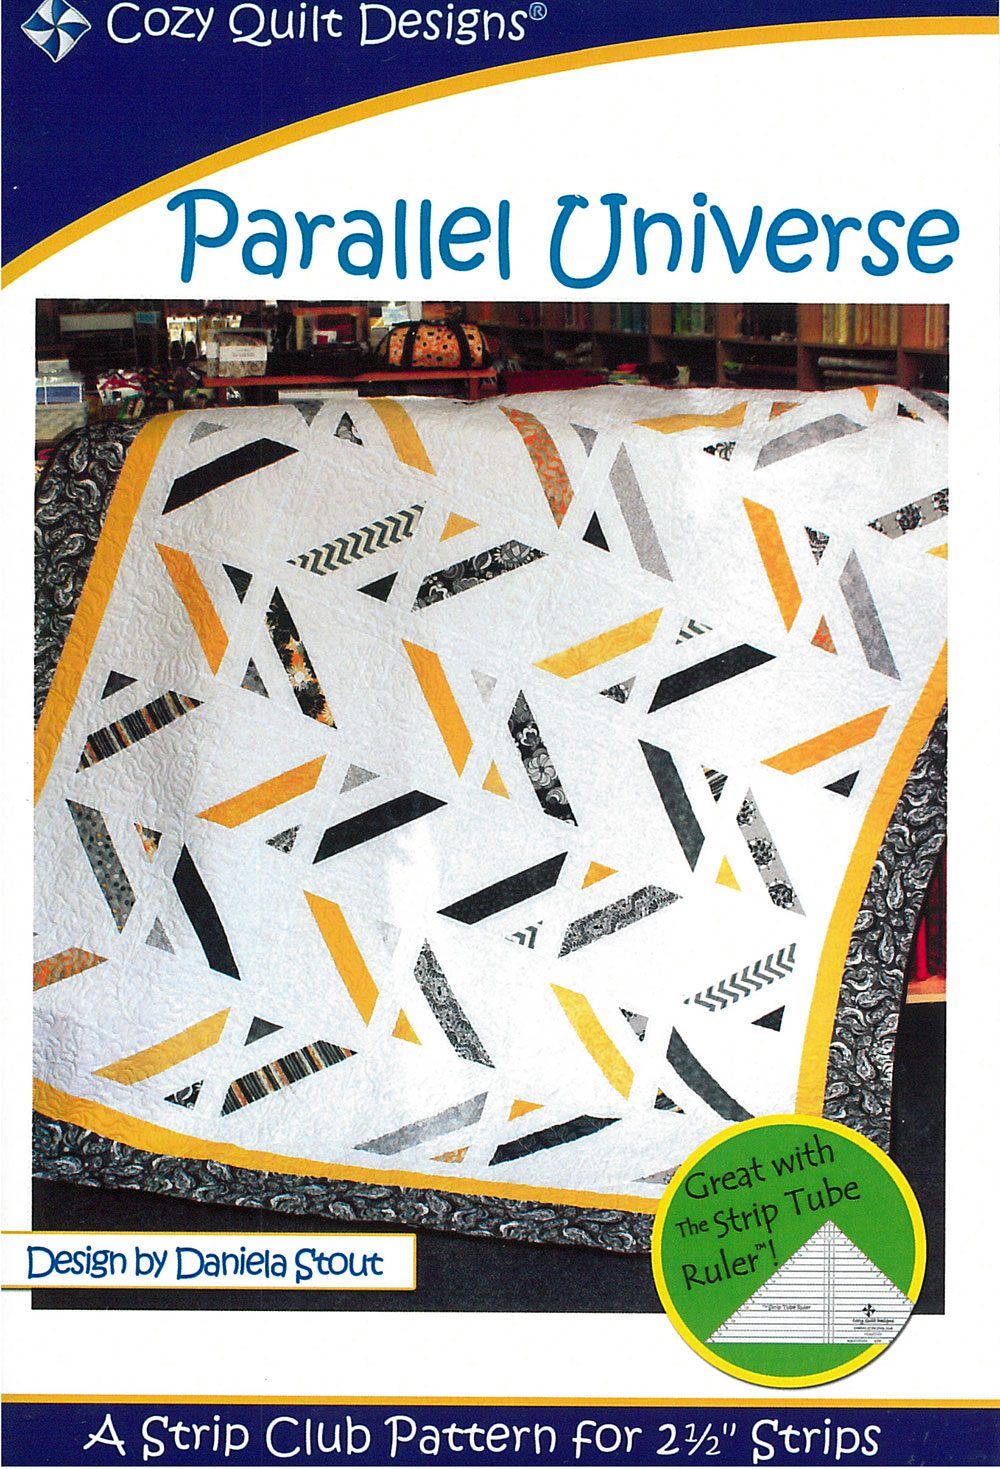 Parallel Universe by Cozy Quilt Designs